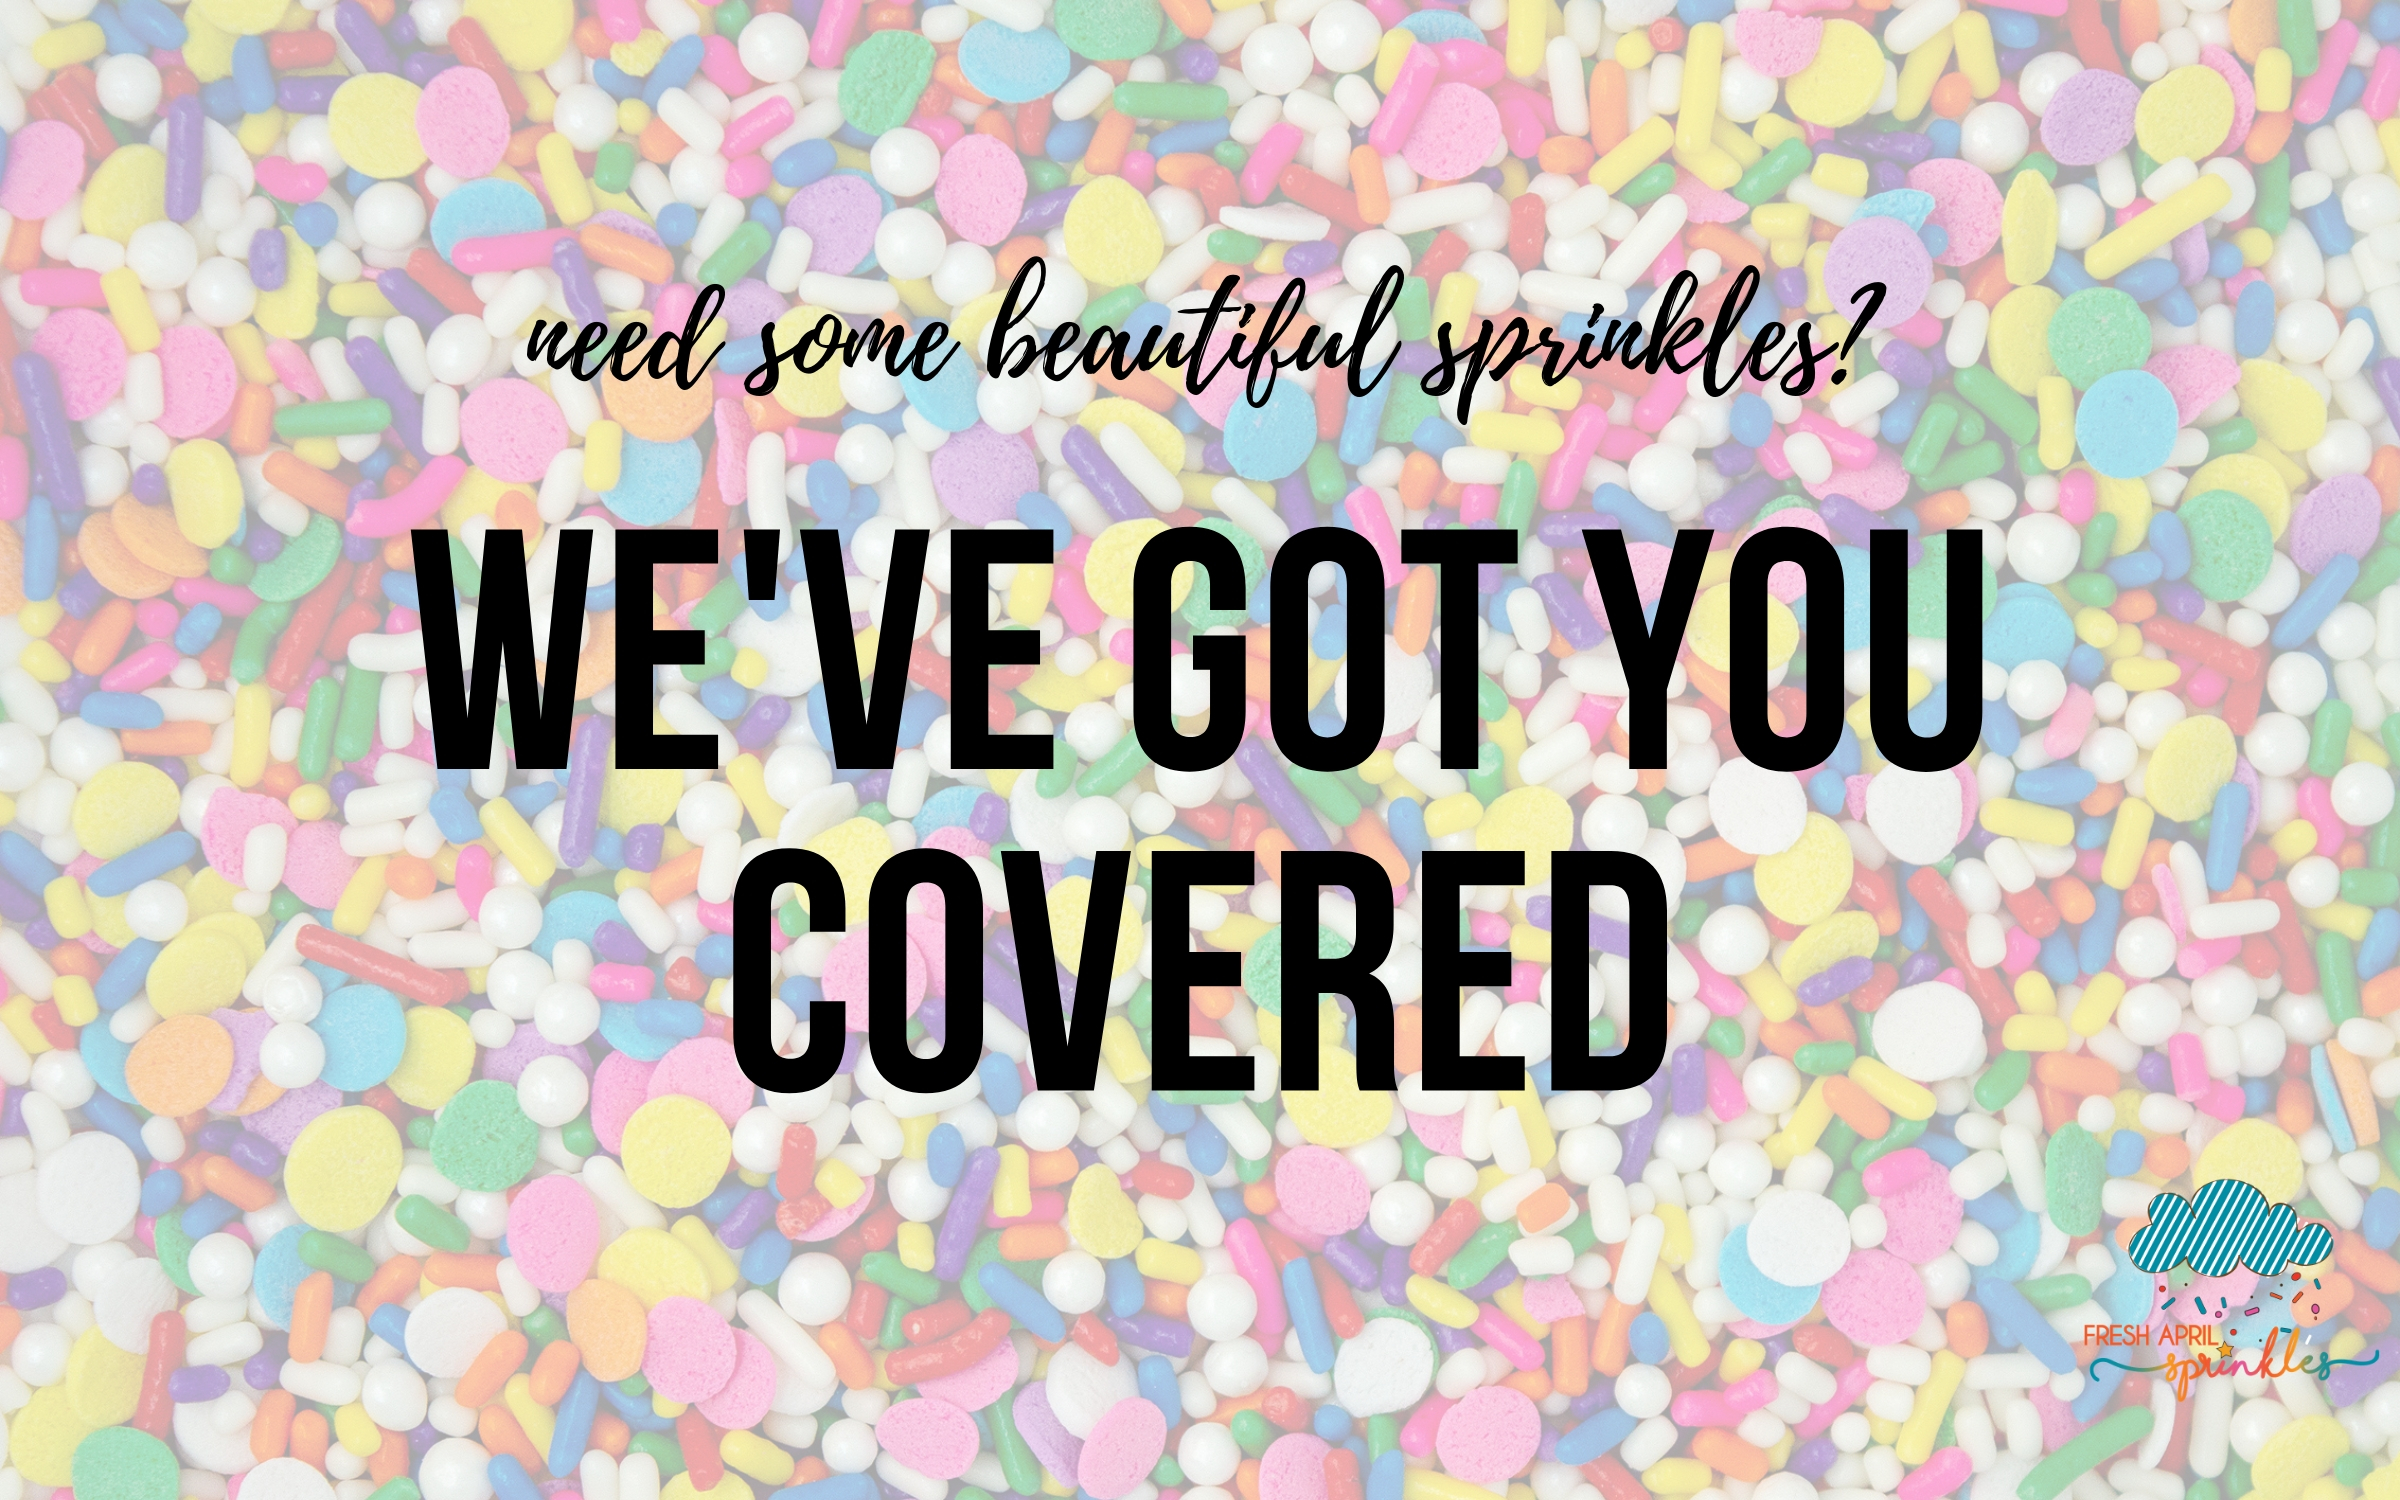 Copy of Need some beautiful sprinkles_ We've got you covered! Visit our sprinkle shop